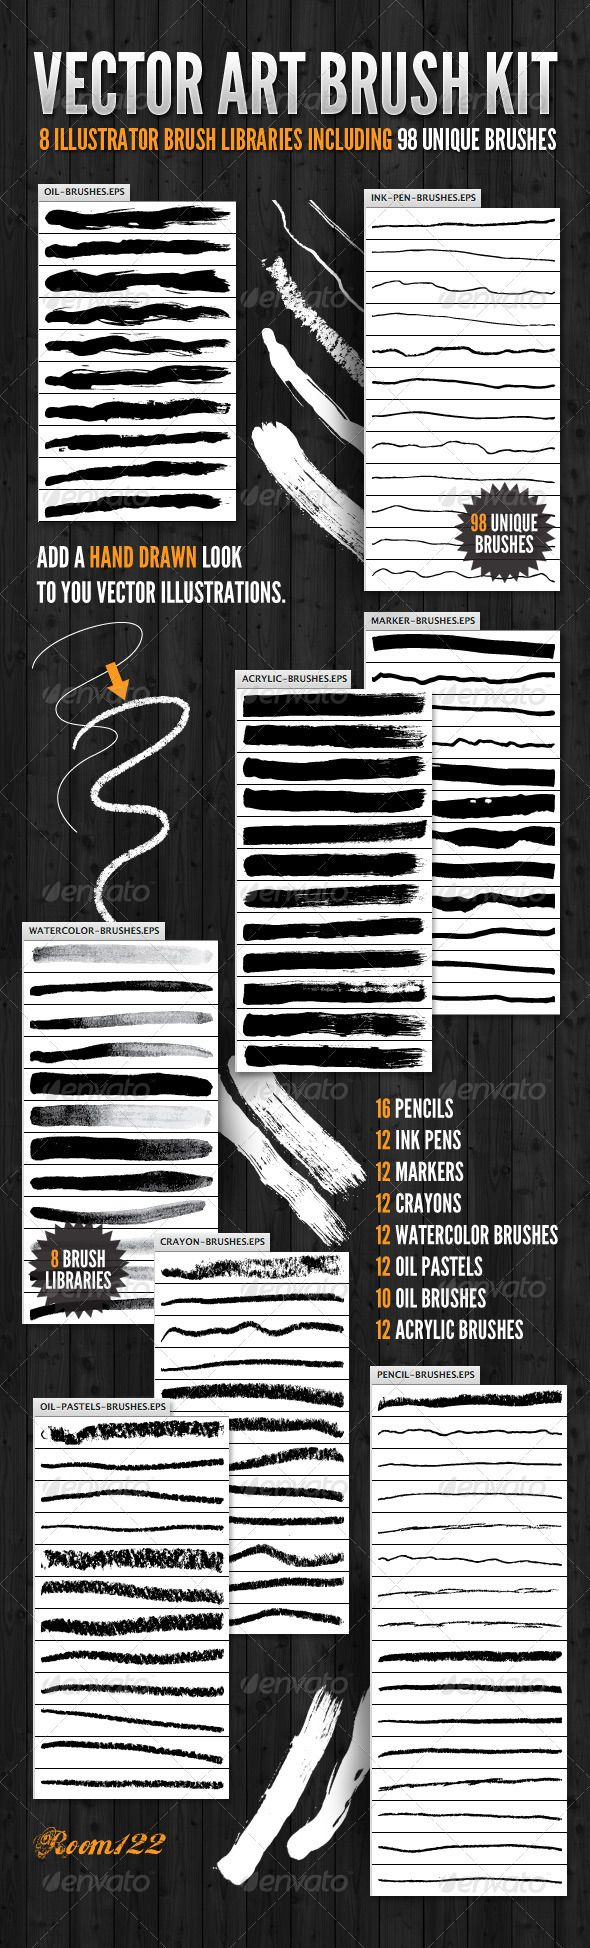 Vector Art Brush Kit #GraphicRiver This set of brushes, for Adobe Illustrator, includes 8 different media libraries with 98 unique art brushes. Add a hand drawn feel to your clean vector lines. The set includes: 16 Pencils 12 Ink Pens 12 Markers 12 Crayons 12 Watercolor brushes 12 Oil Pastels 10 oil Brushes 12 Acrylic brushes Created: 16February12 Add-onFilesIncluded: VectorEPS MinimumAdobeCSVersion: CS Tags: acrylic #art #artist #brush #brushes #cartoon #comic #crayon #eps #illustration…